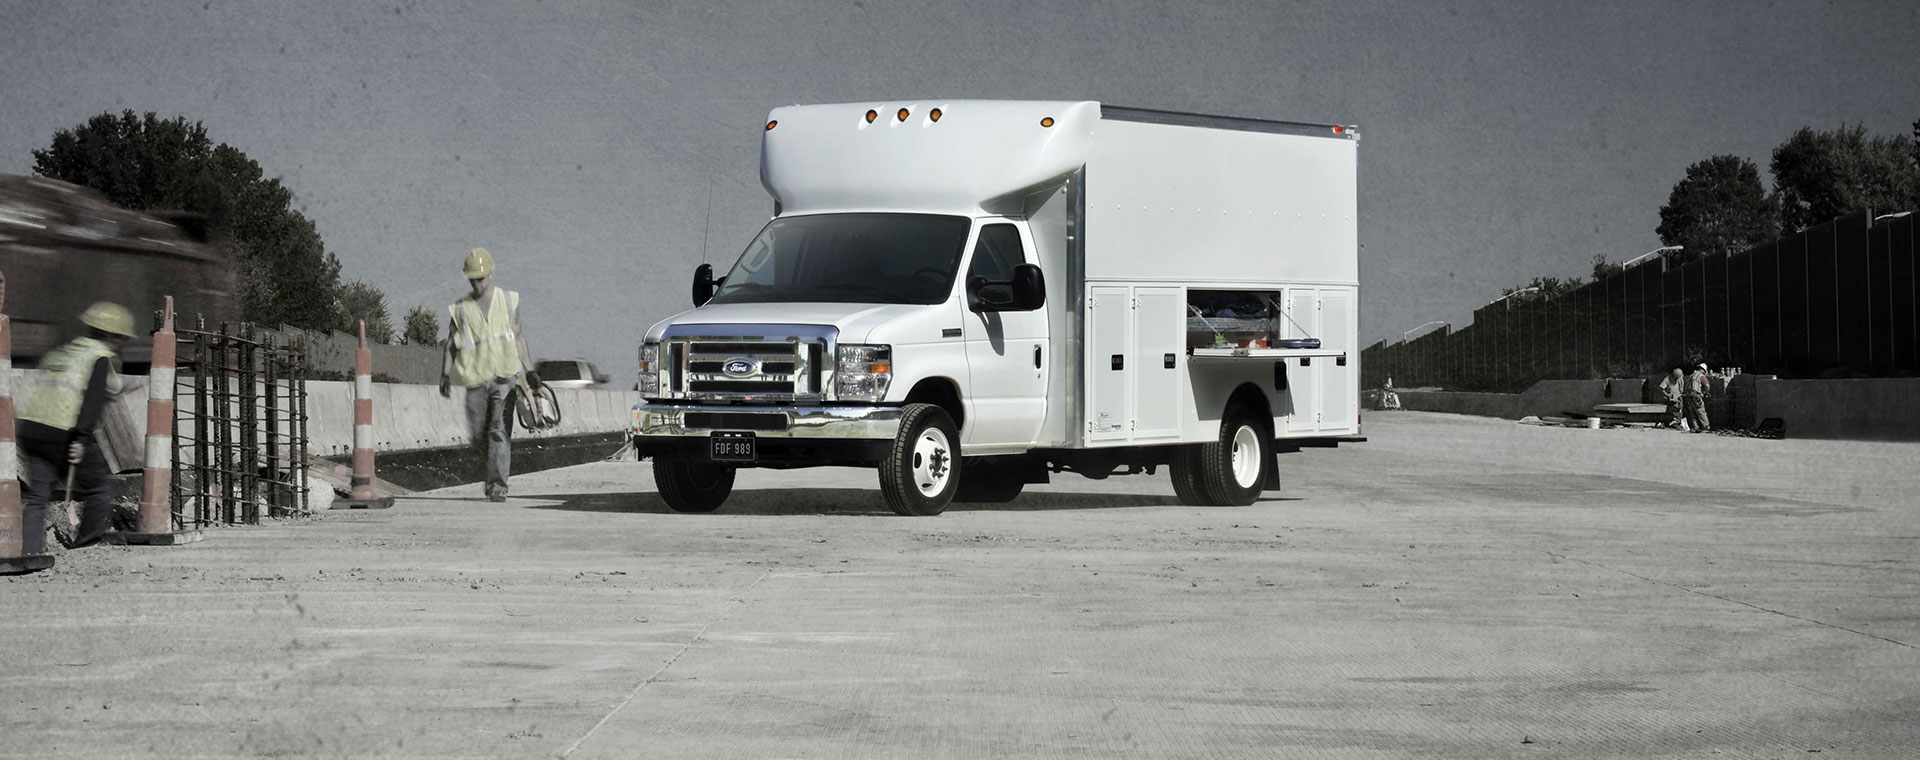 New Econoline inventory at Quirk Ford